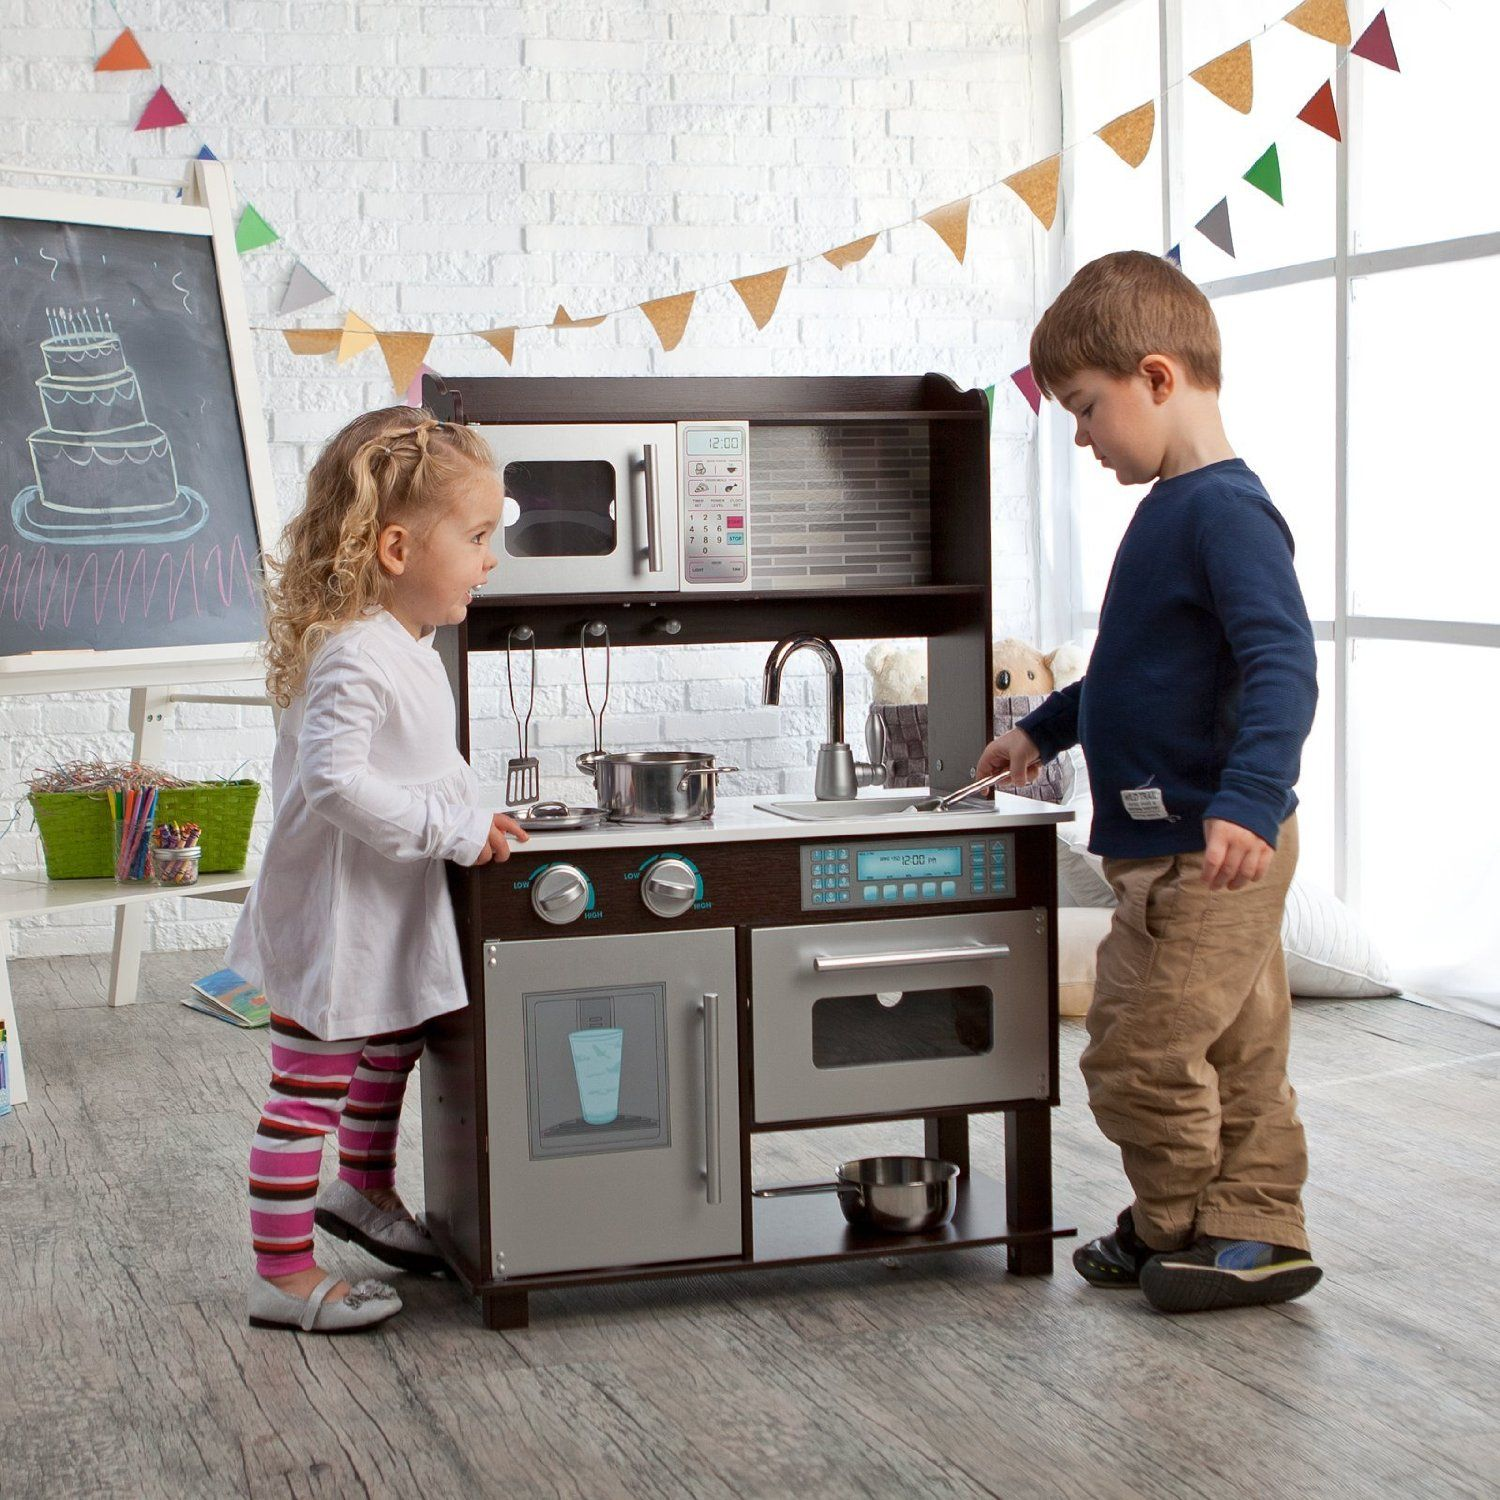 Amazon.com: KidKraft Toddler Play Kitchen With Metal